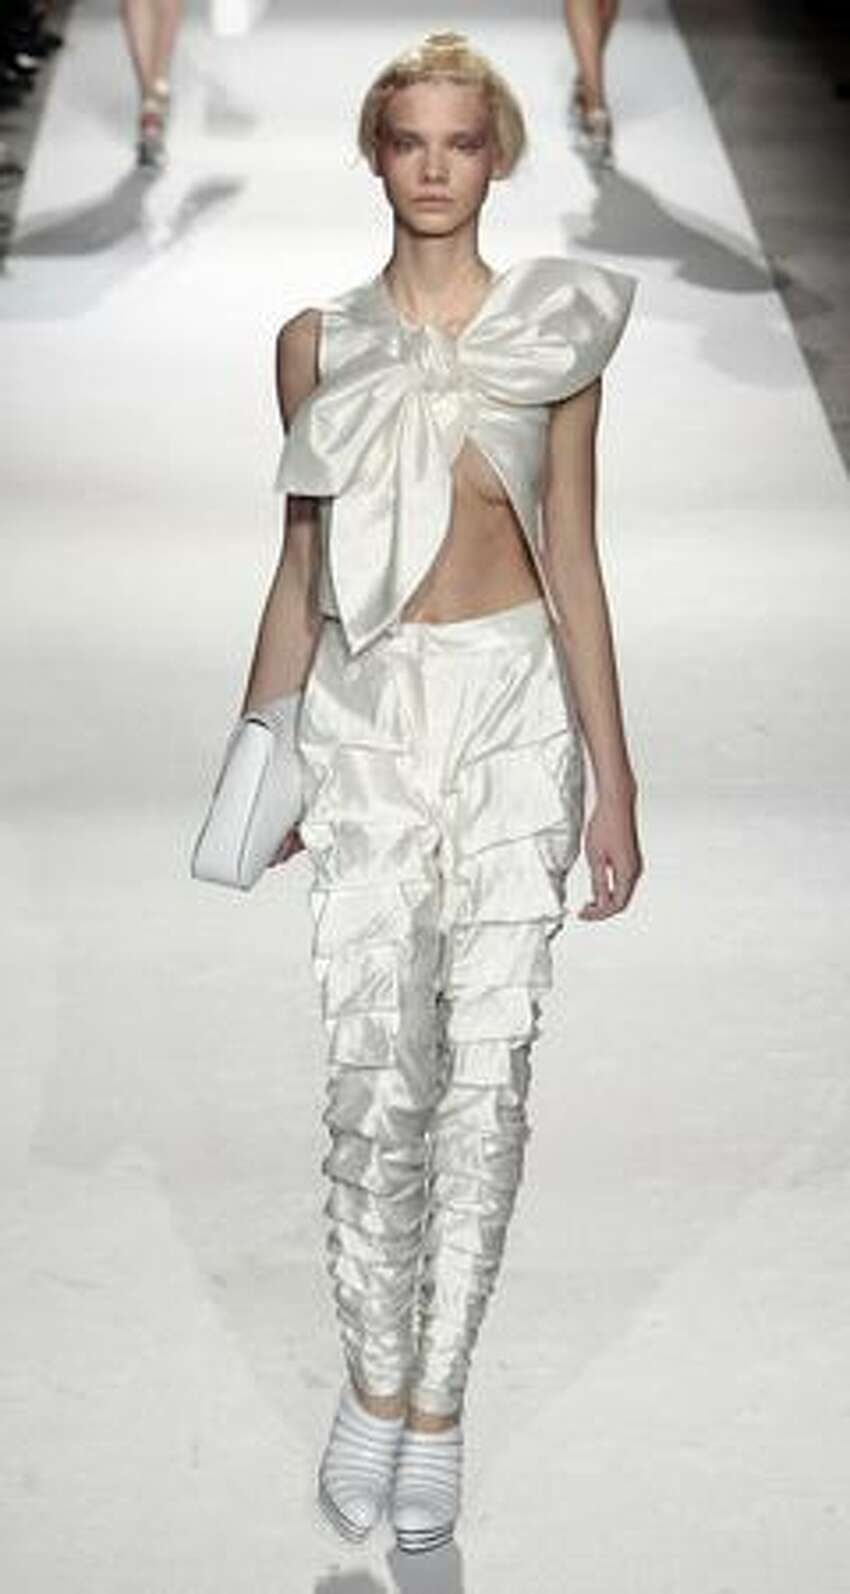 A model presents an outfit by Korean designer Lie Sang Bong during ready-to-wear Spring-Summer 2010 fashion show in Paris.